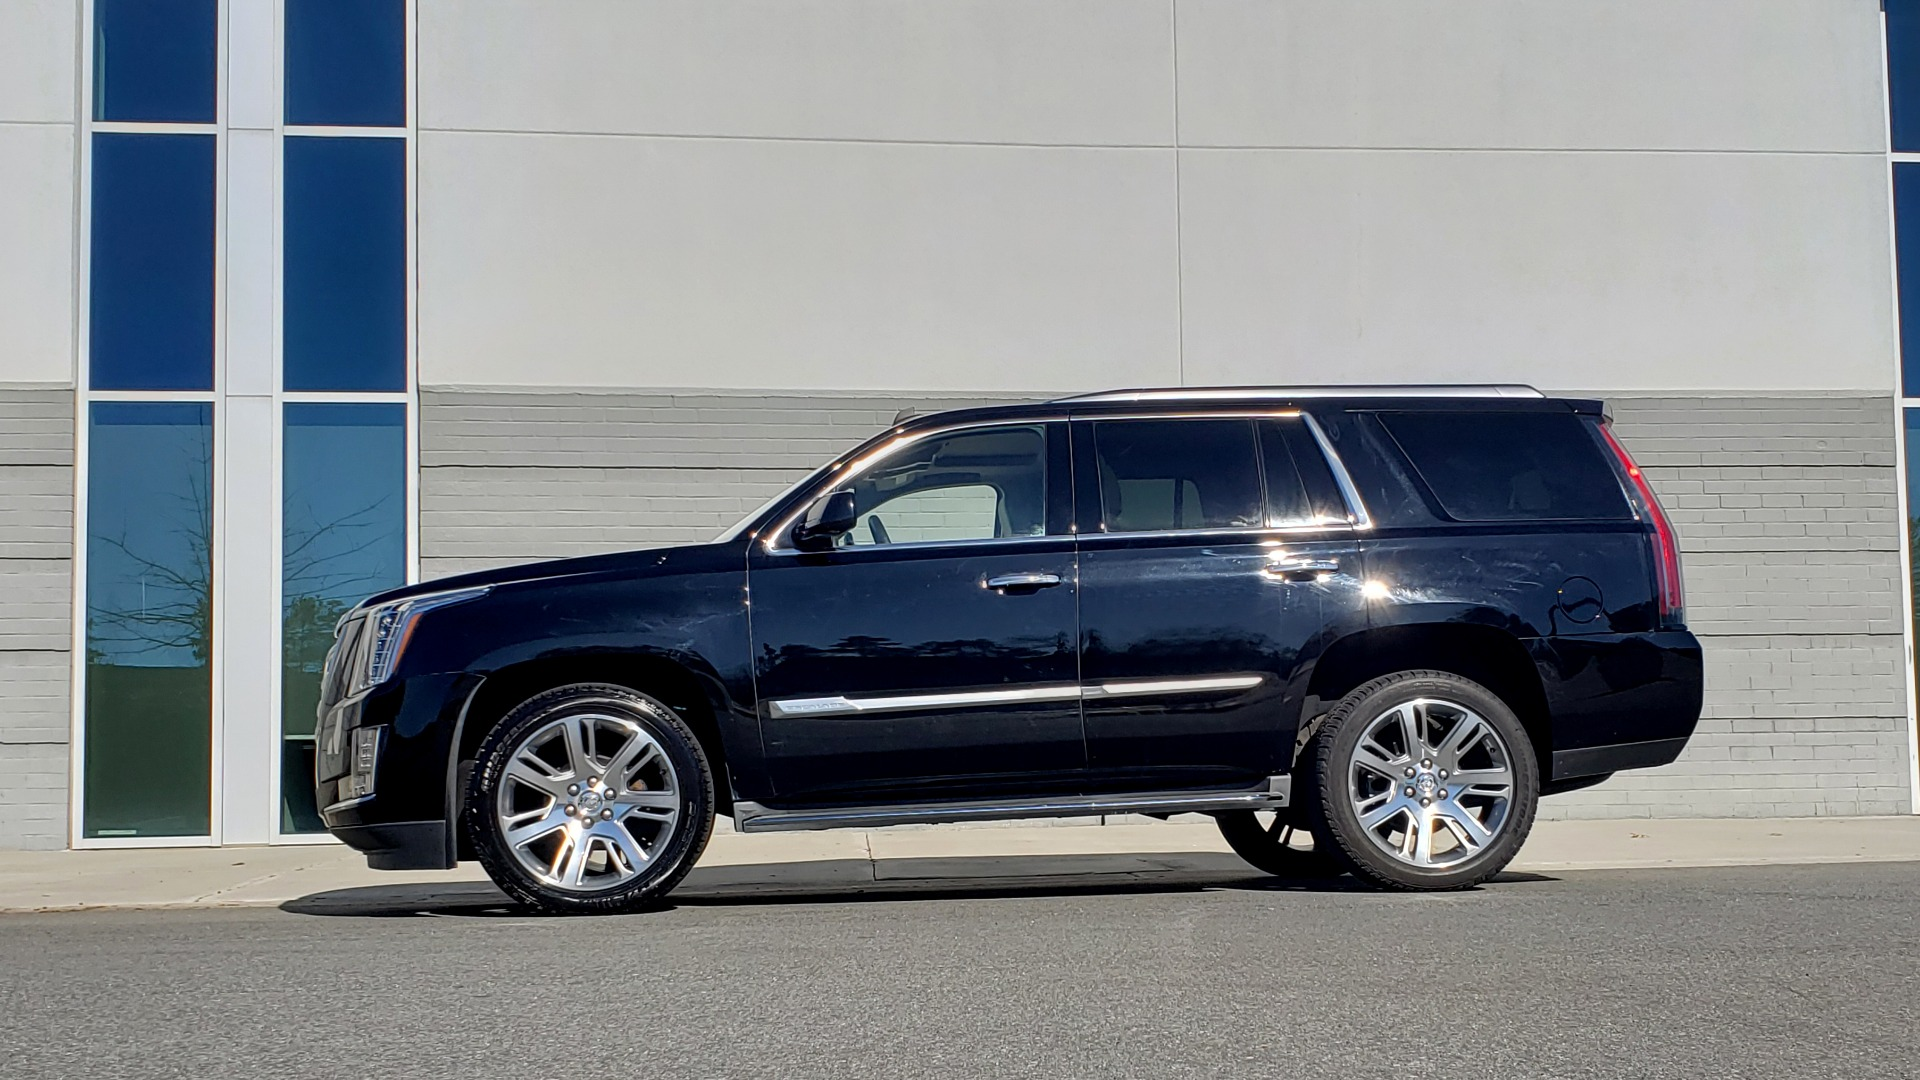 Used 2015 Cadillac ESCALADE PREMIUM 4WD / NAV / SUNROOF / REARVIEW / 3-ROW for sale Sold at Formula Imports in Charlotte NC 28227 4